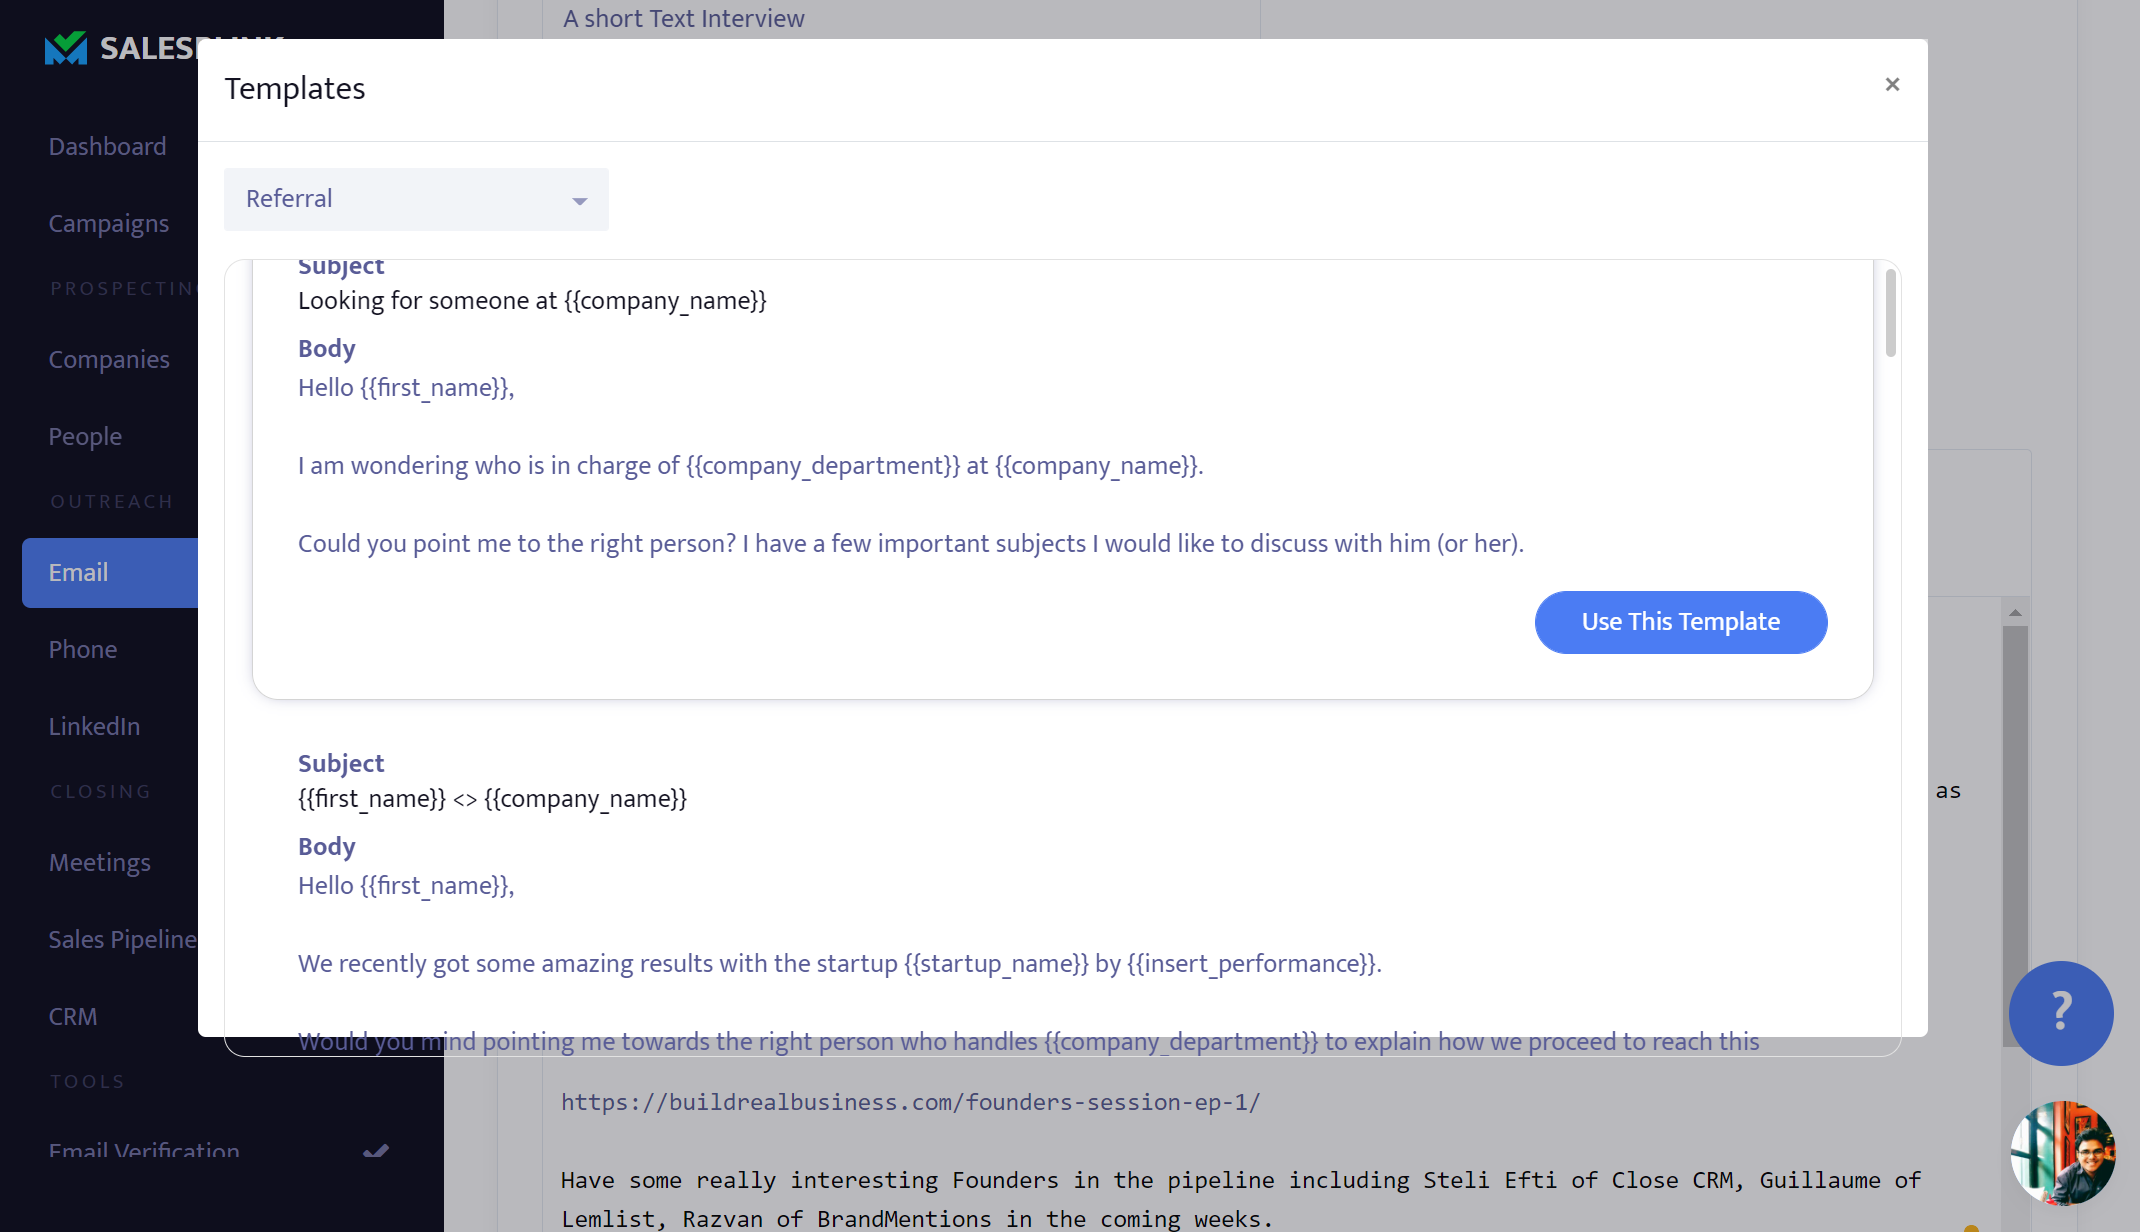 SalesBlink - Email Templates